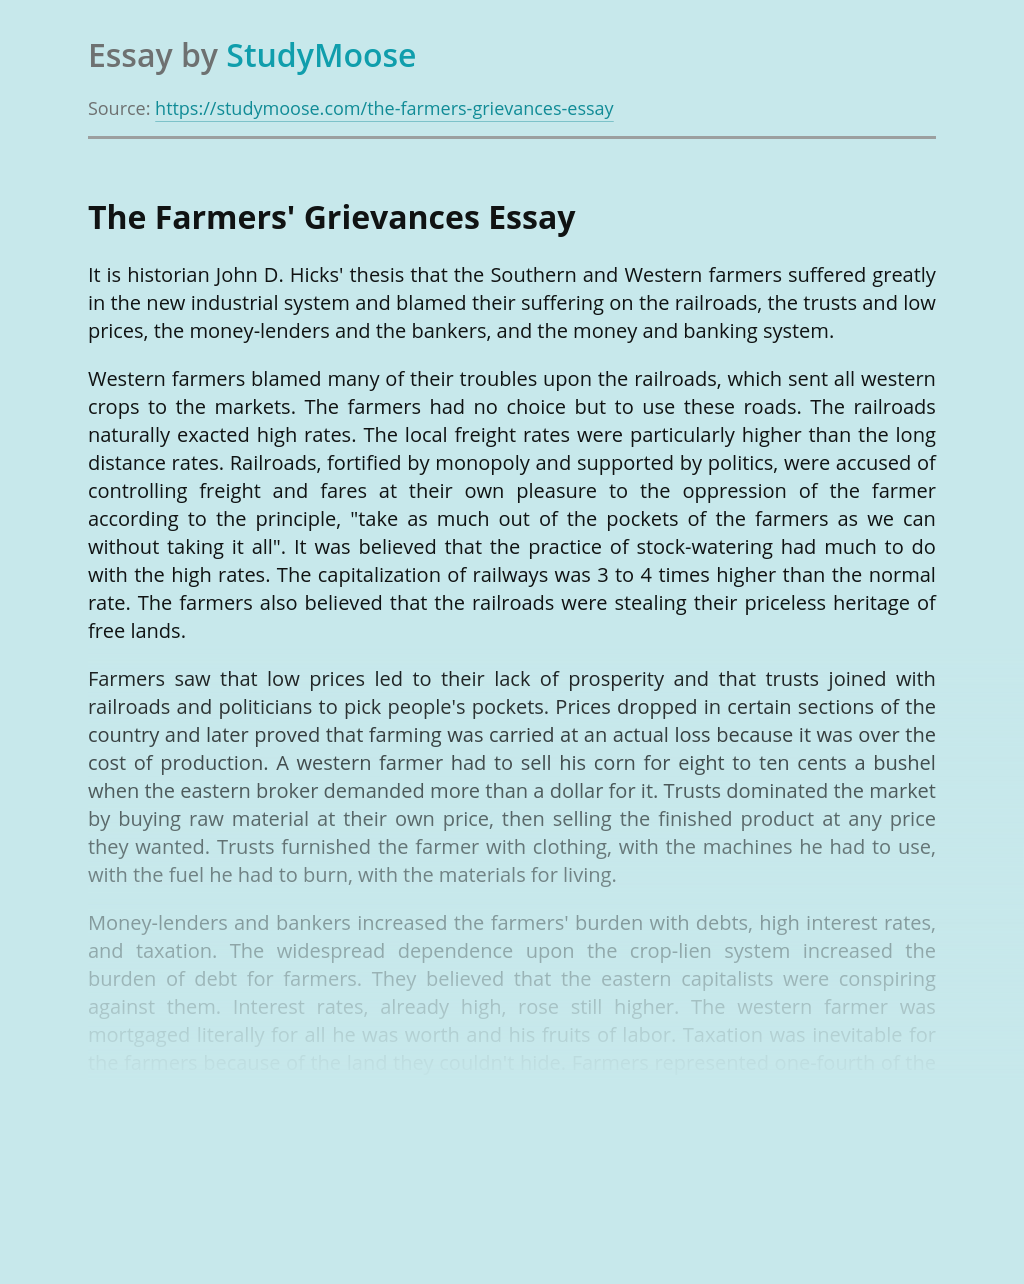 Industrial Revolution and The Farmers' Grievances